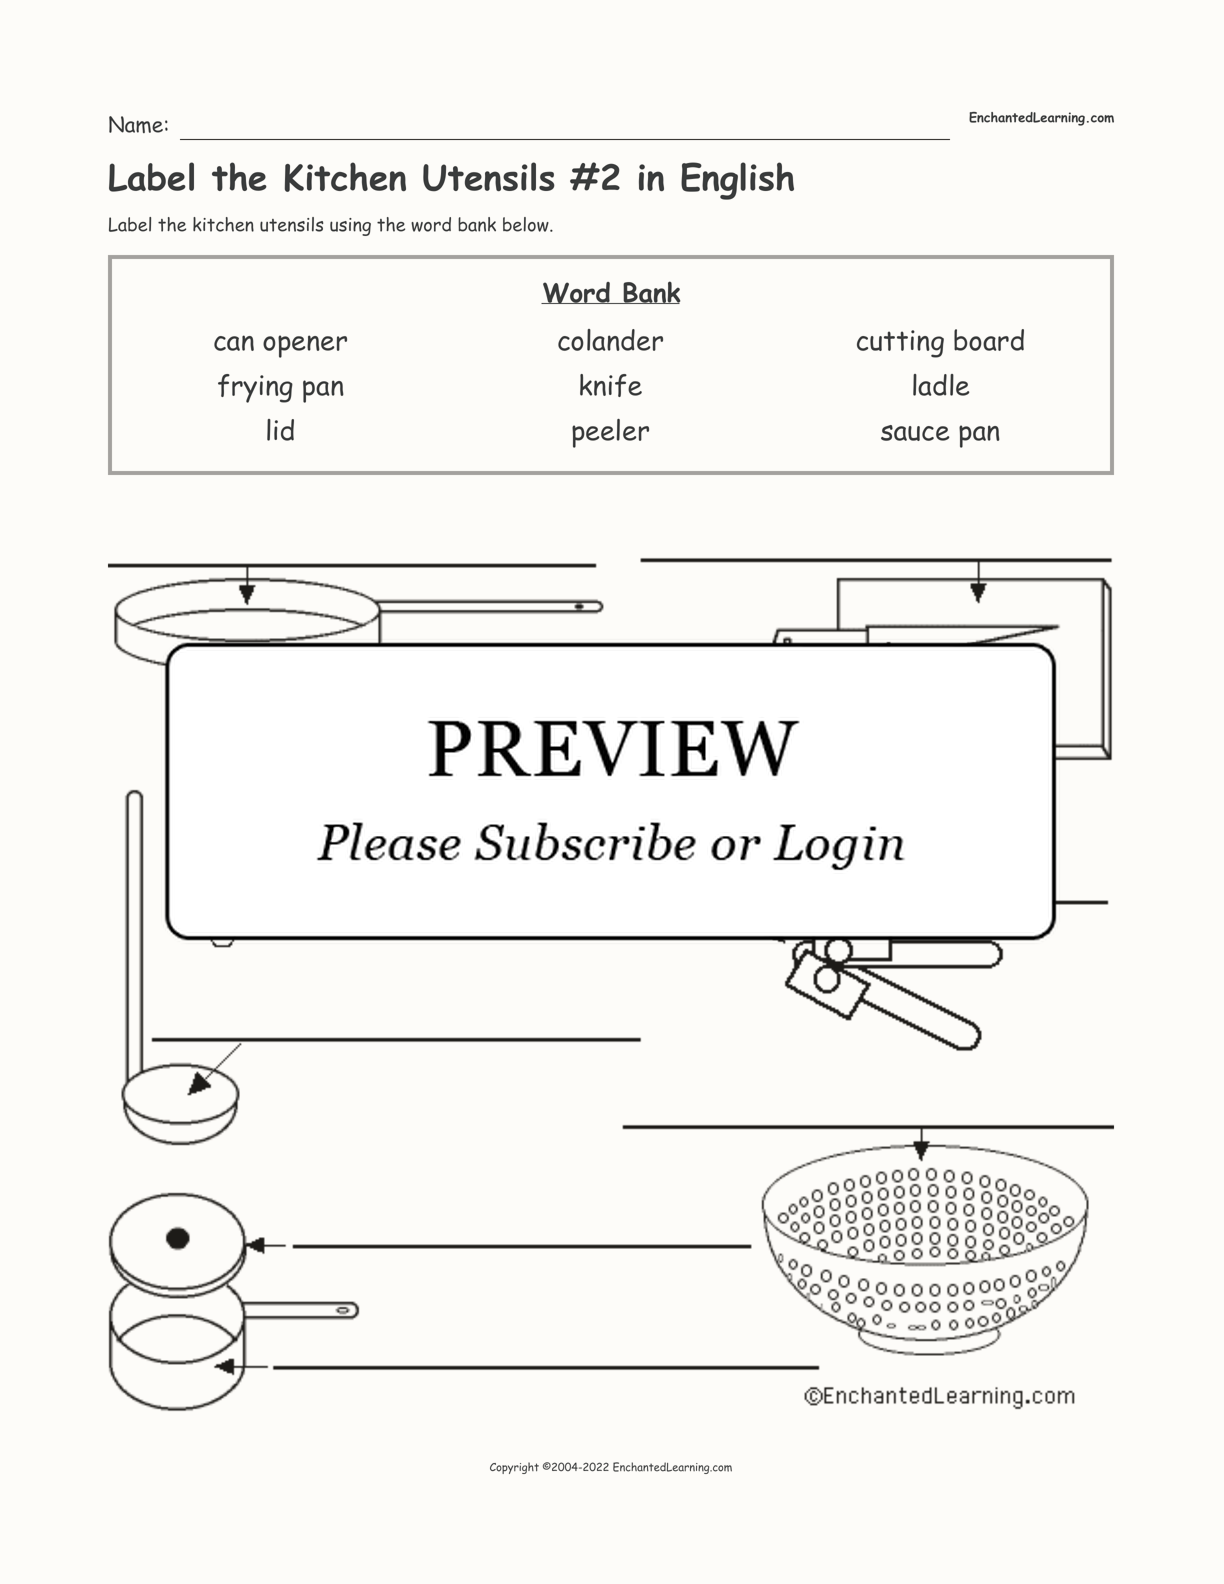 Label the Kitchen Utensils #2 in English interactive worksheet page 1